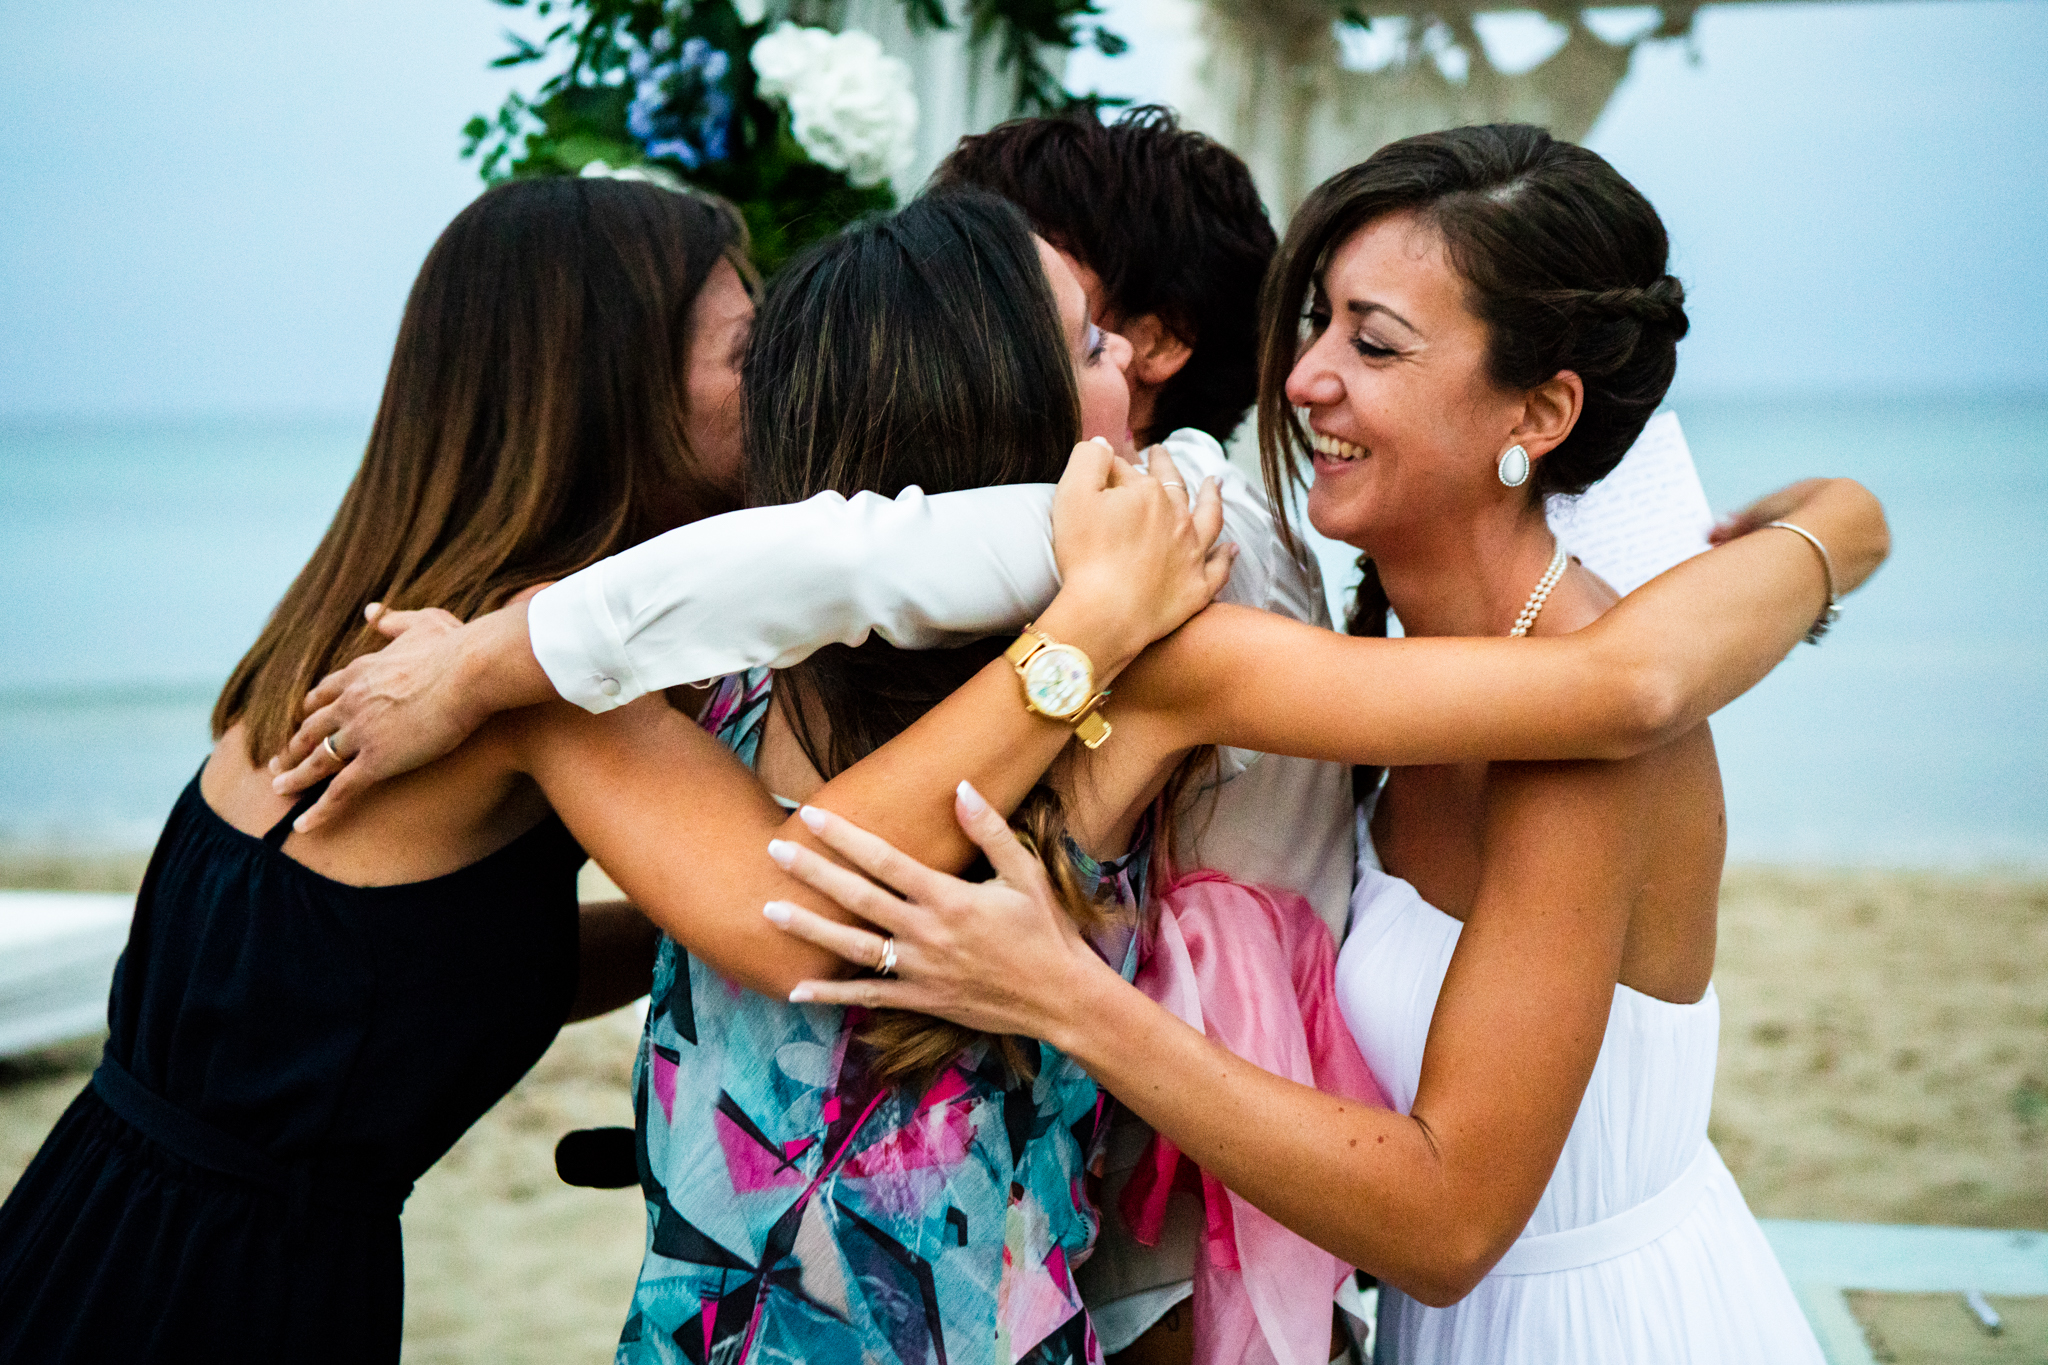 enkant-fotografia-video-matrimonio-catania-20.jpg